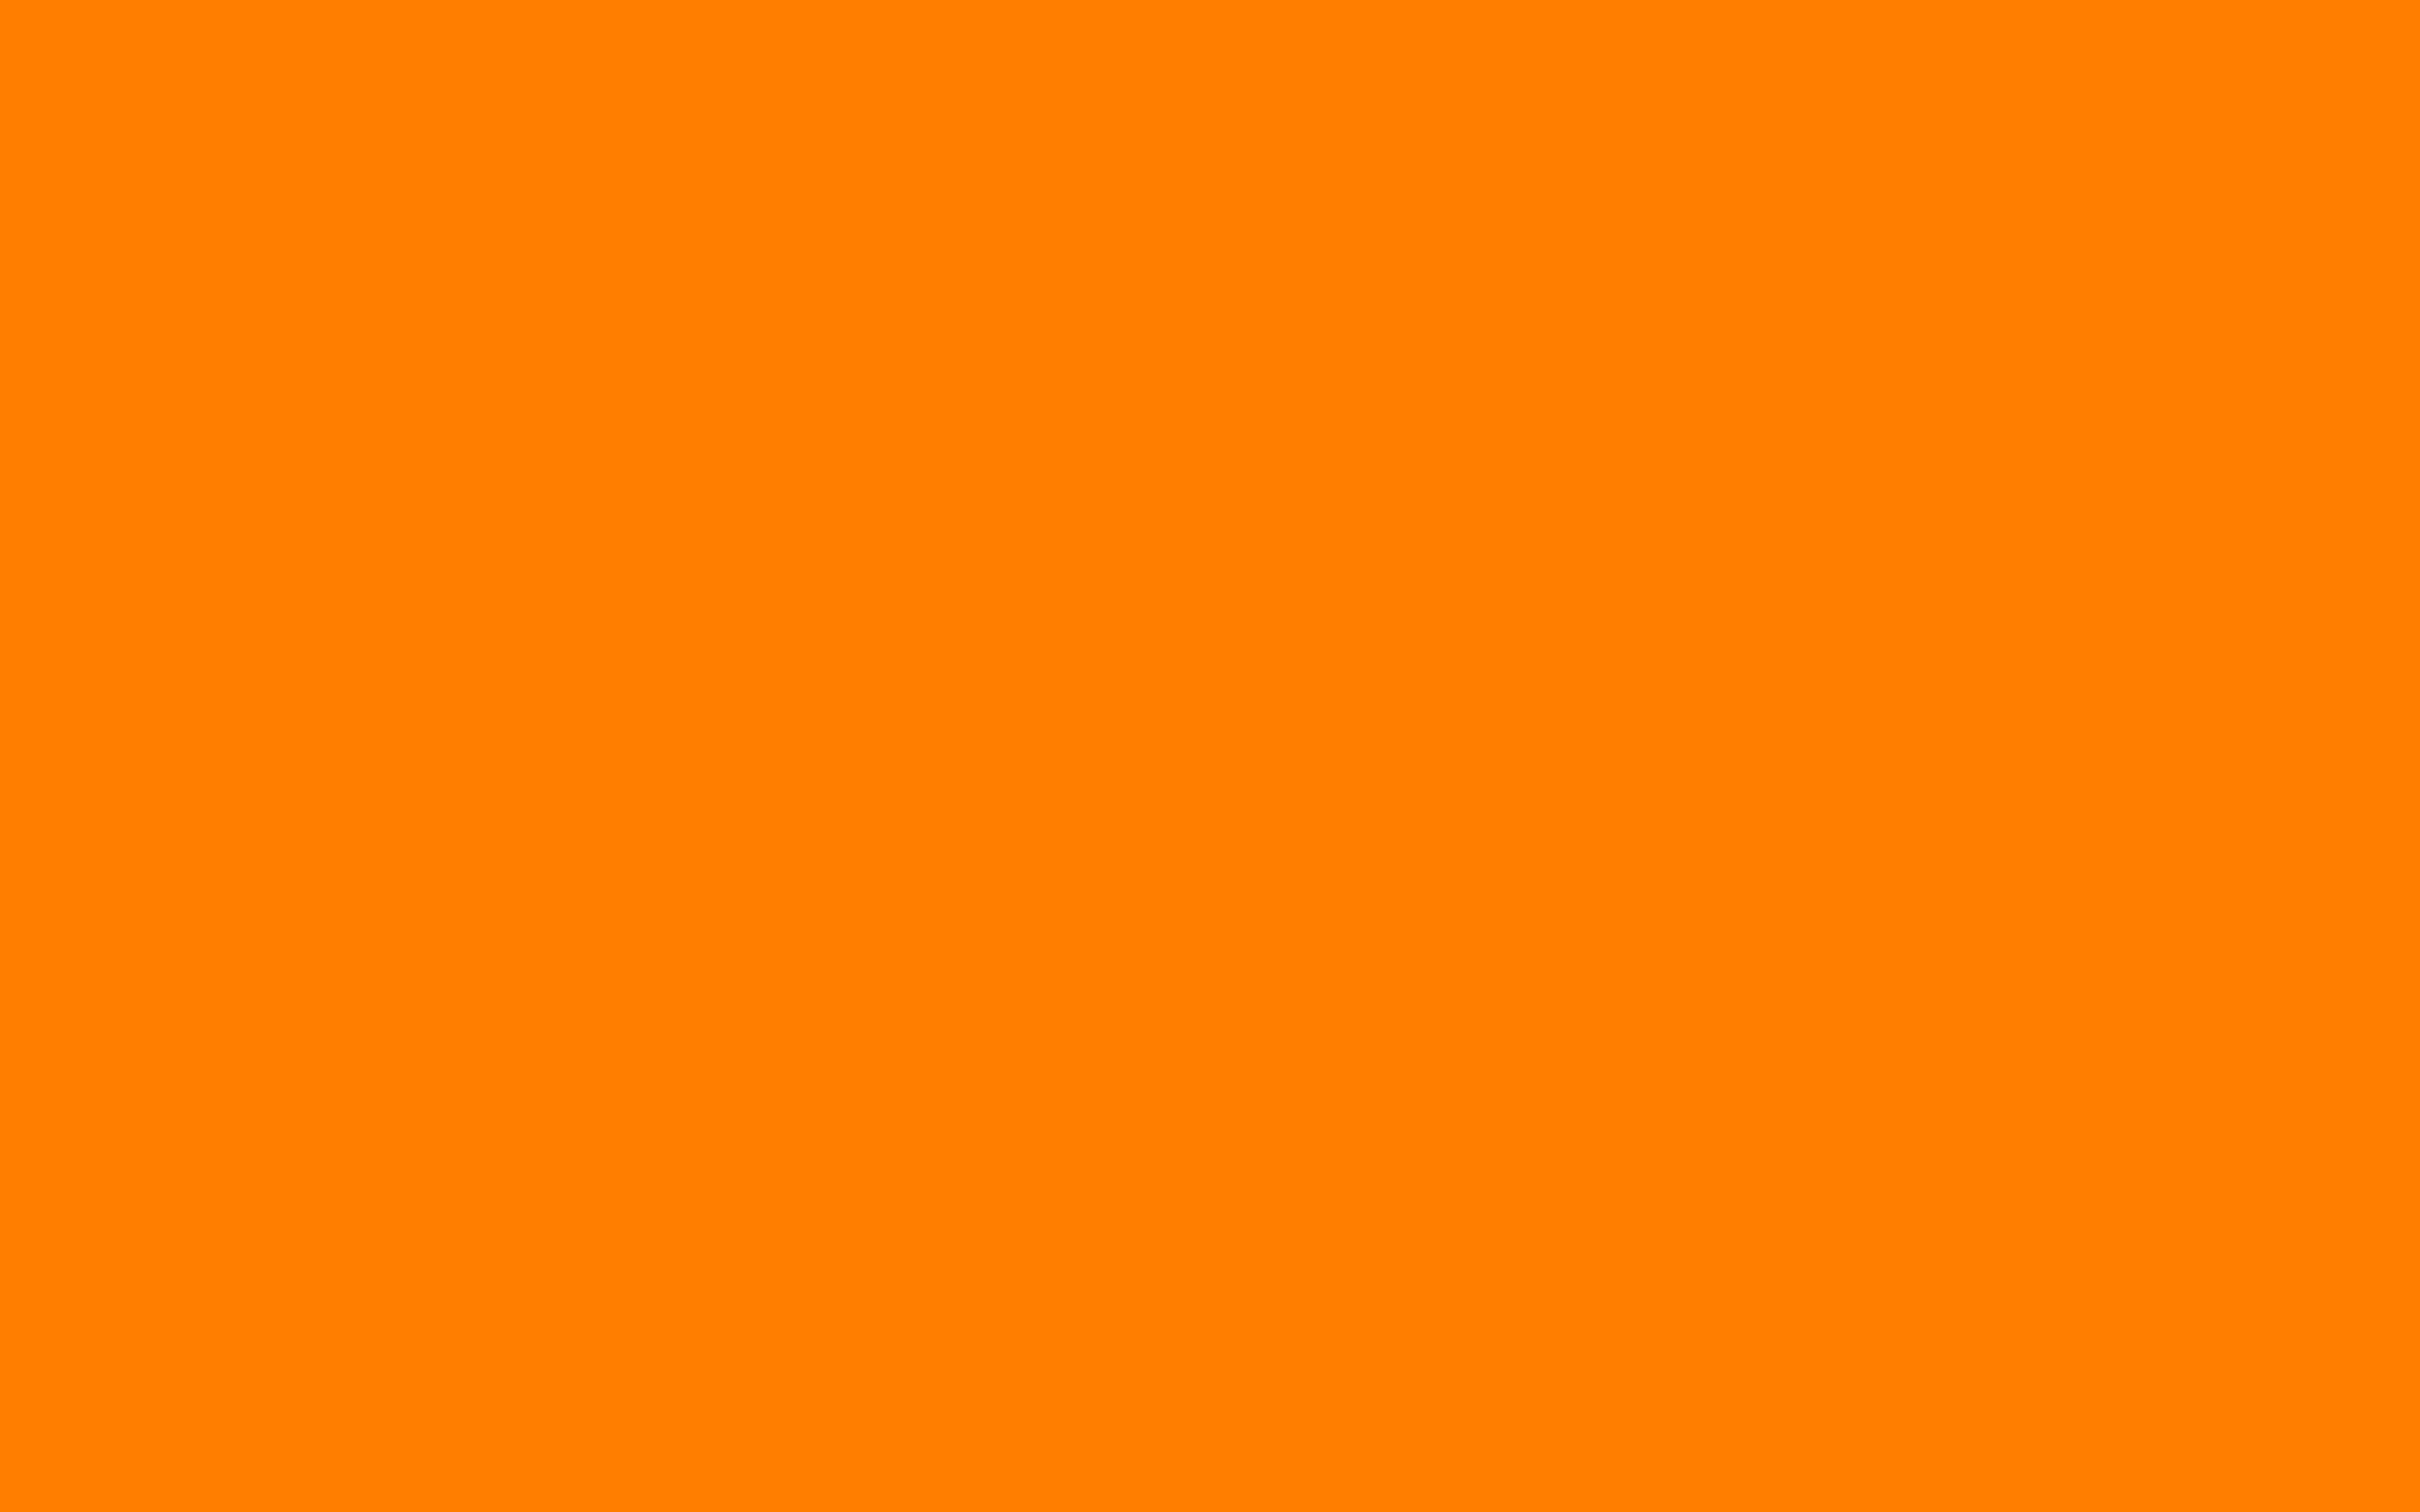 Orange solid color background view and download the below background 2880x1800